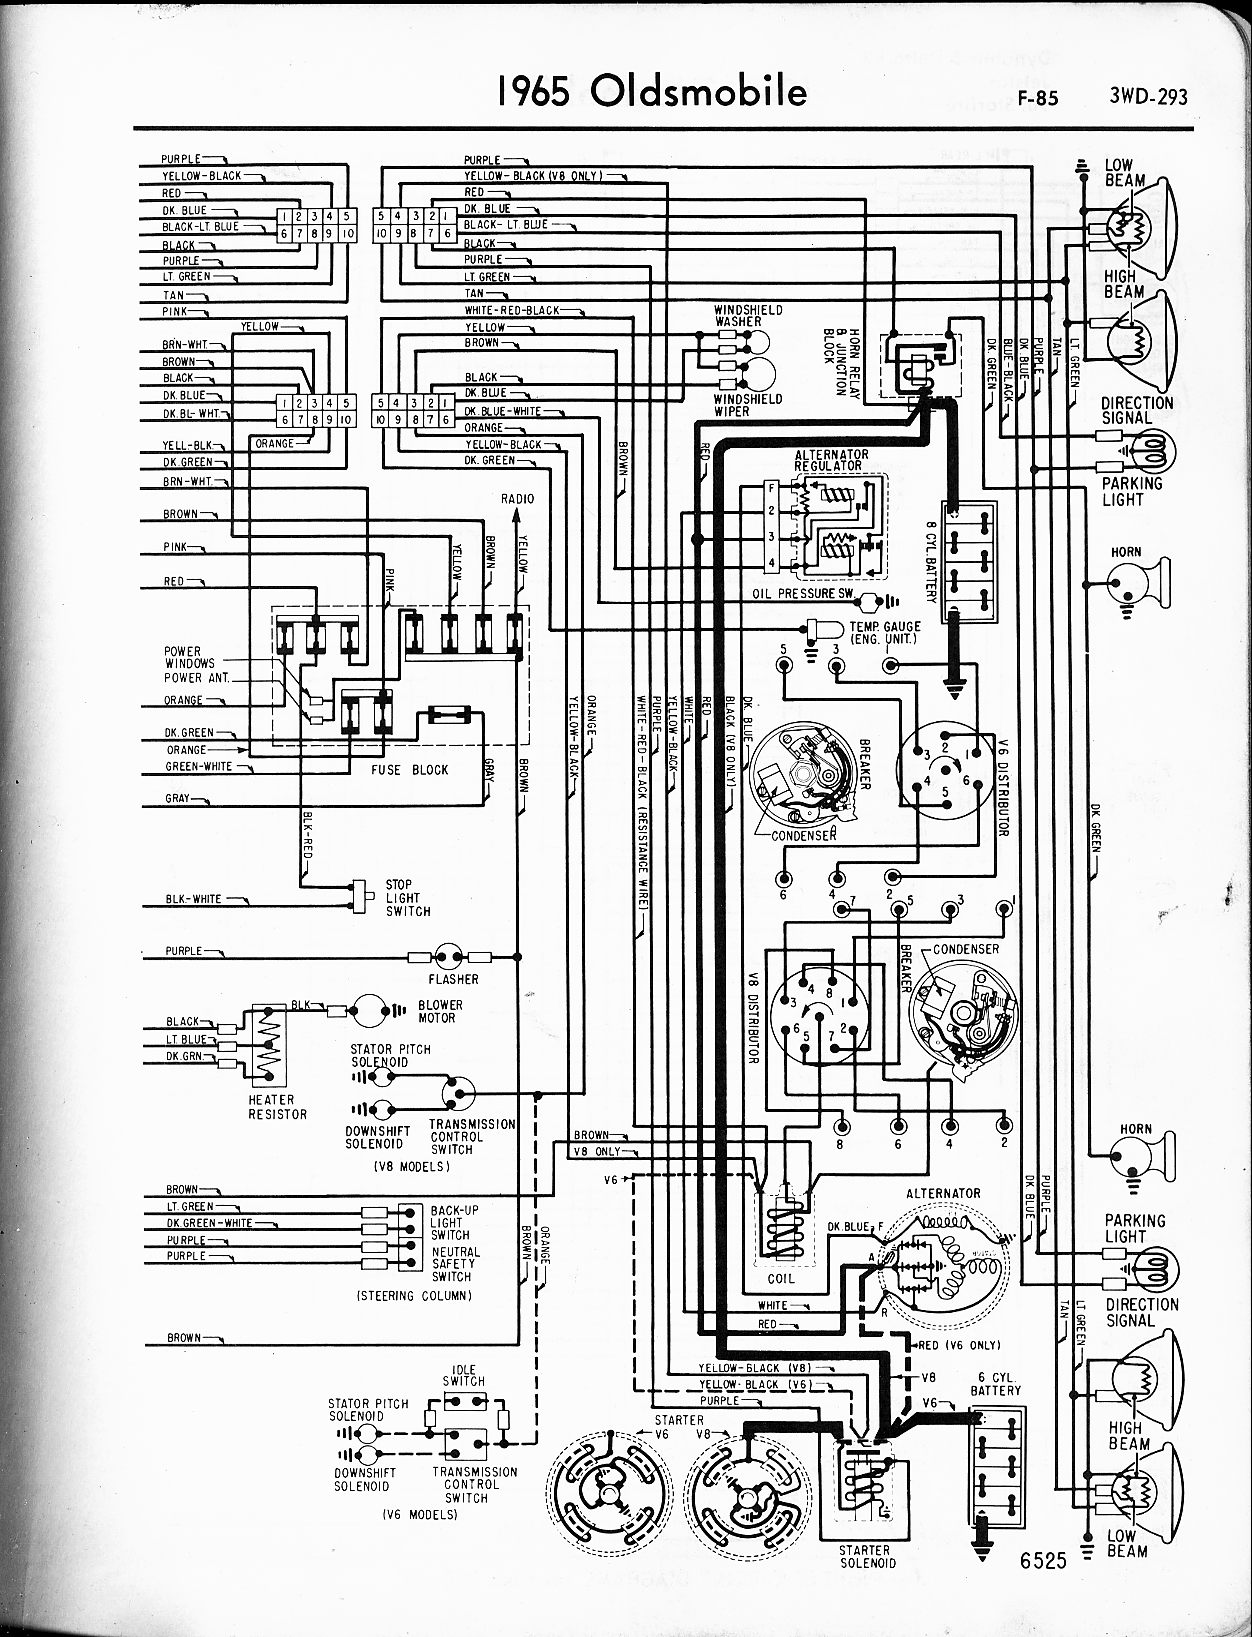 Fuel Gauge Wiring For 1969 Oldsmobile - Circuit Diagram Symbols •